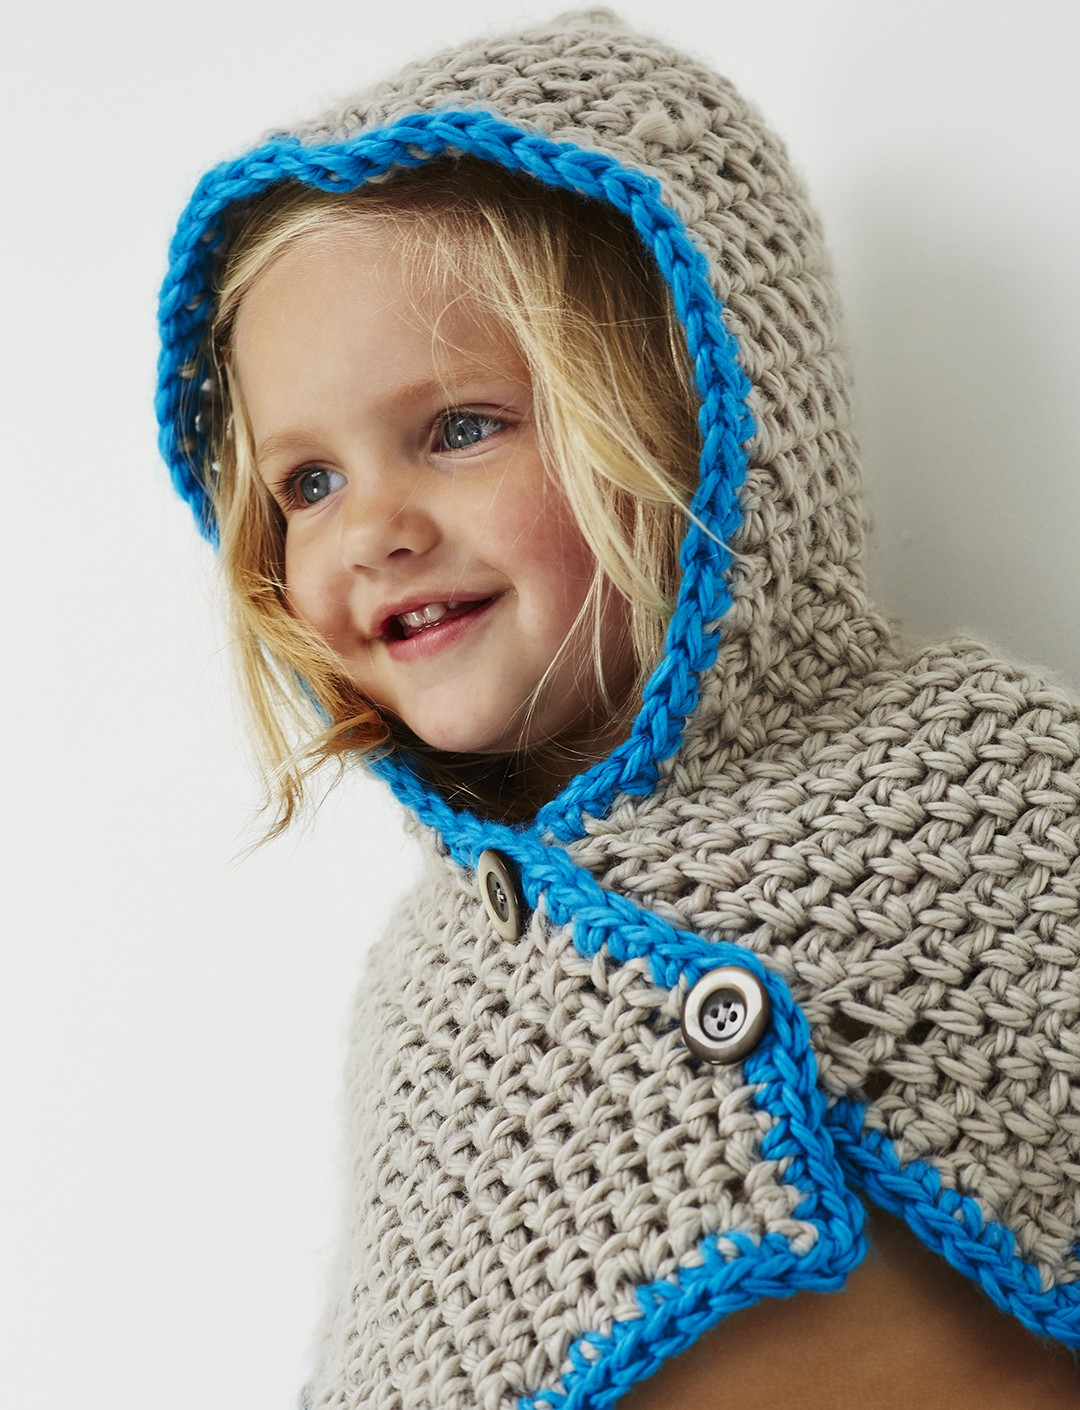 Free Crochet Pattern Toddler Hooded Cowl : This quick and cozy crochet cowl works up in a jiffy: free ...